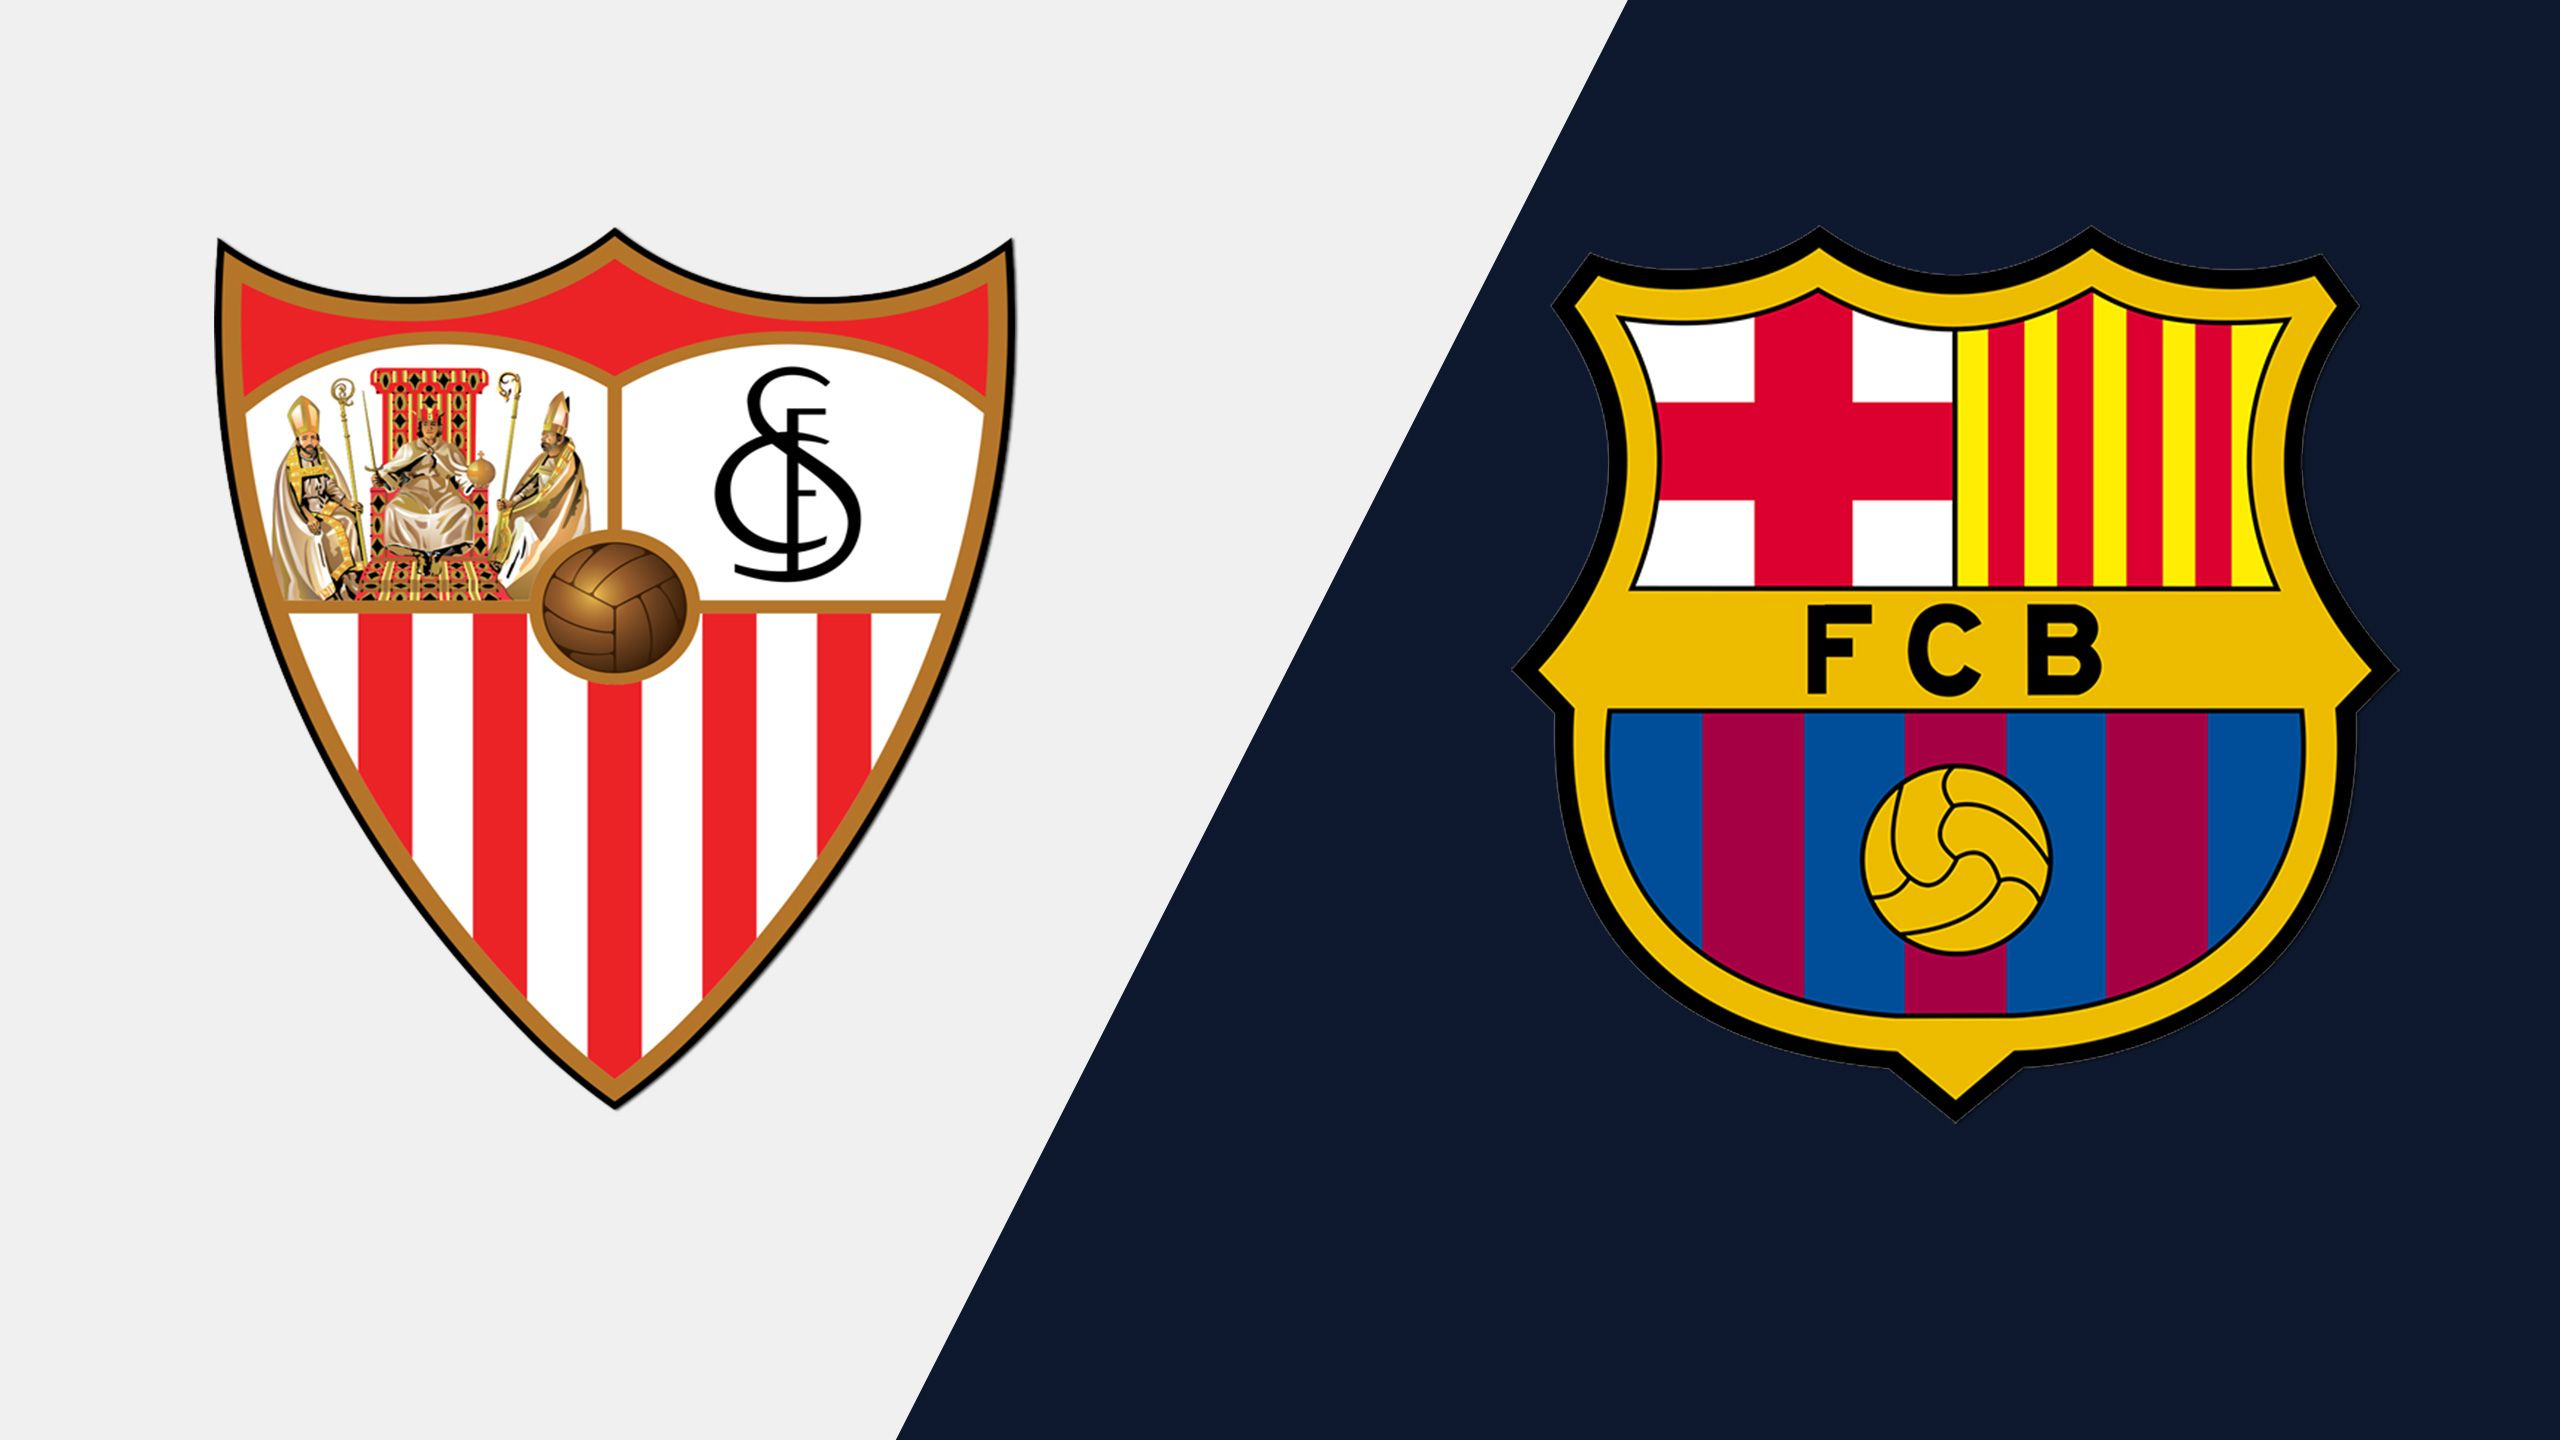 In Spanish - Sevilla vs. FC Barcelona (Final) (Copa del Rey)